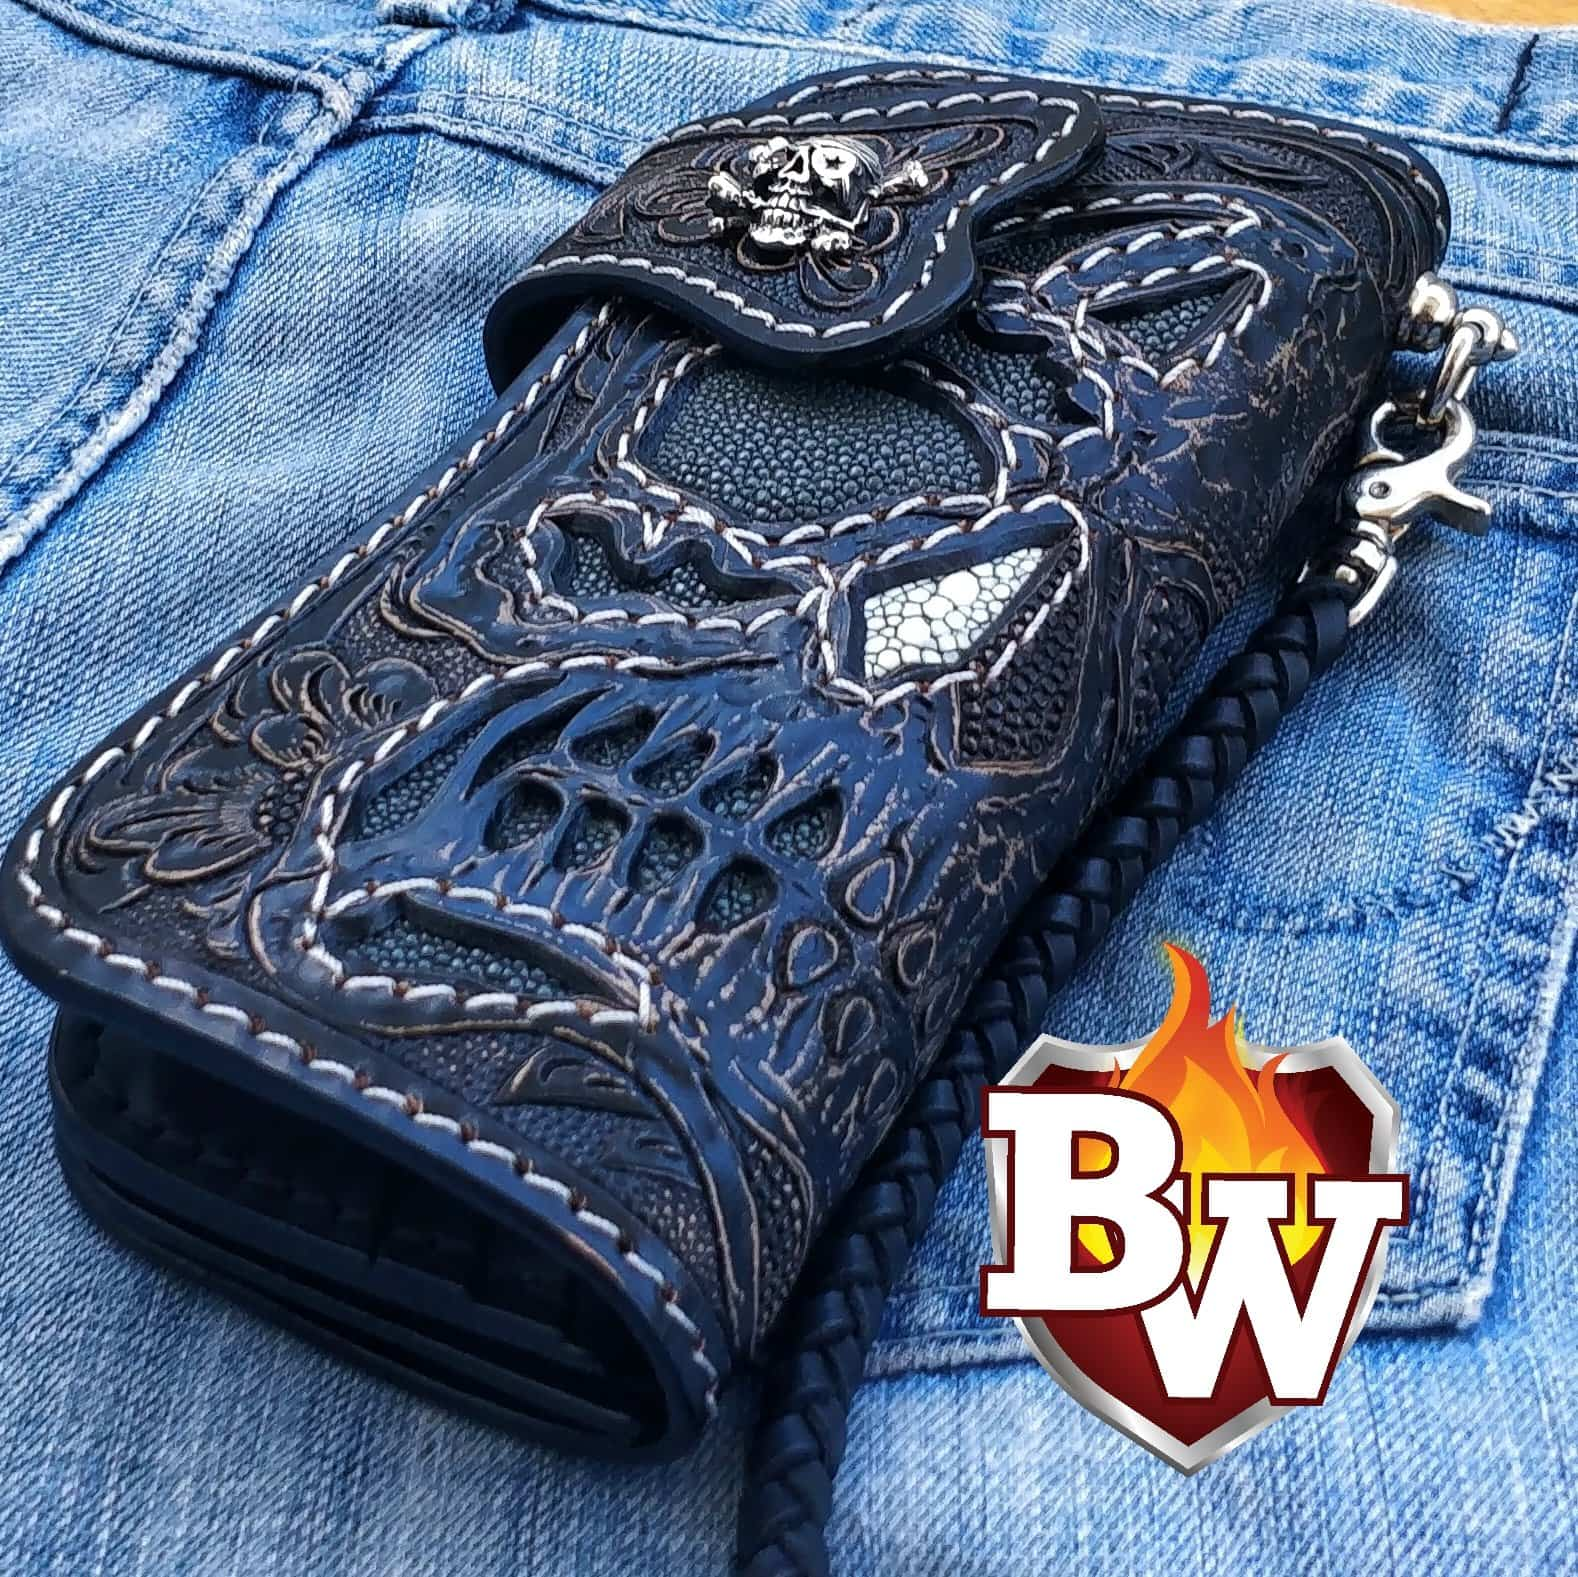 """Greybeard's Skull"" 8"" Custom Handmade Hand Tooled Stingray and Leather Men's Biker Wallet"